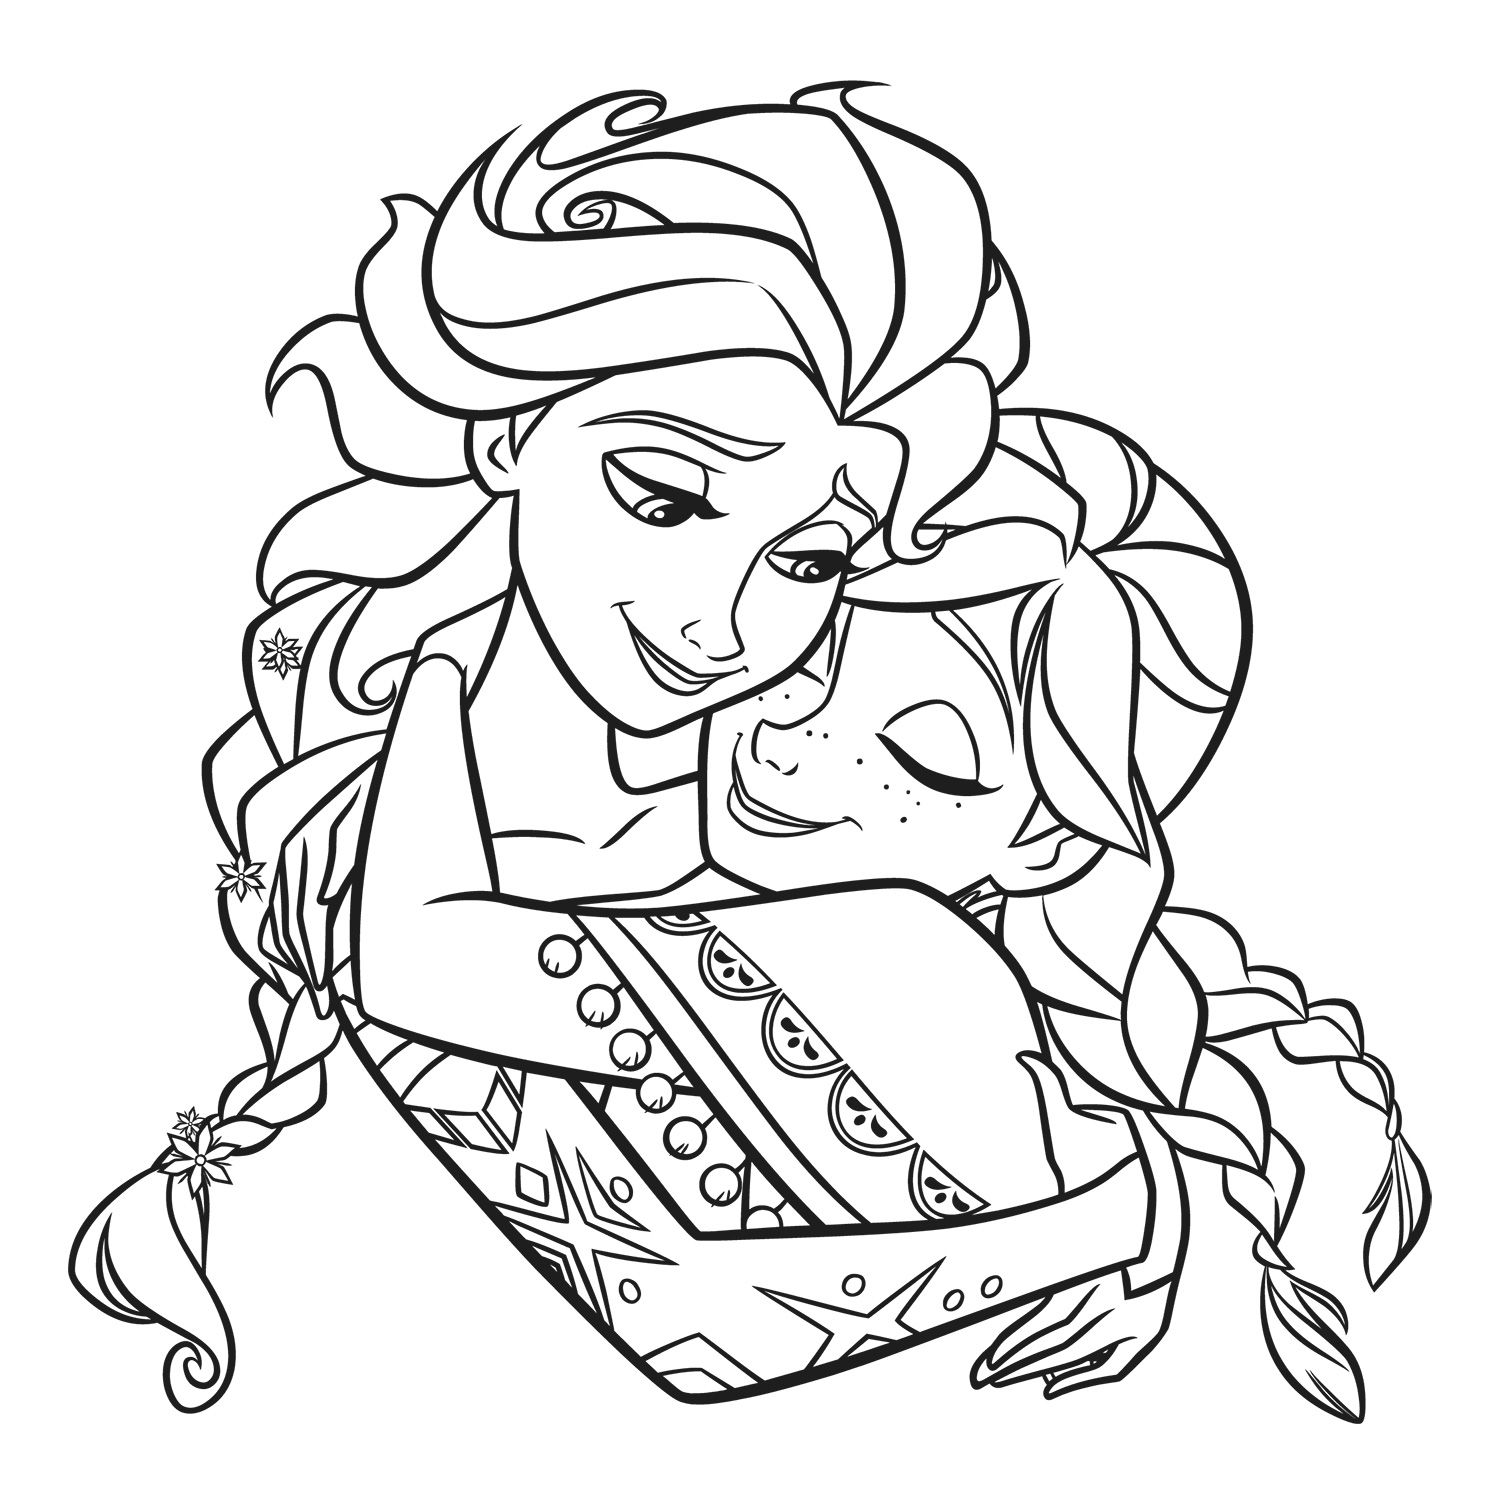 Pin by Dóri Házi on WINTER PRINCESS kids COLORING pages ...